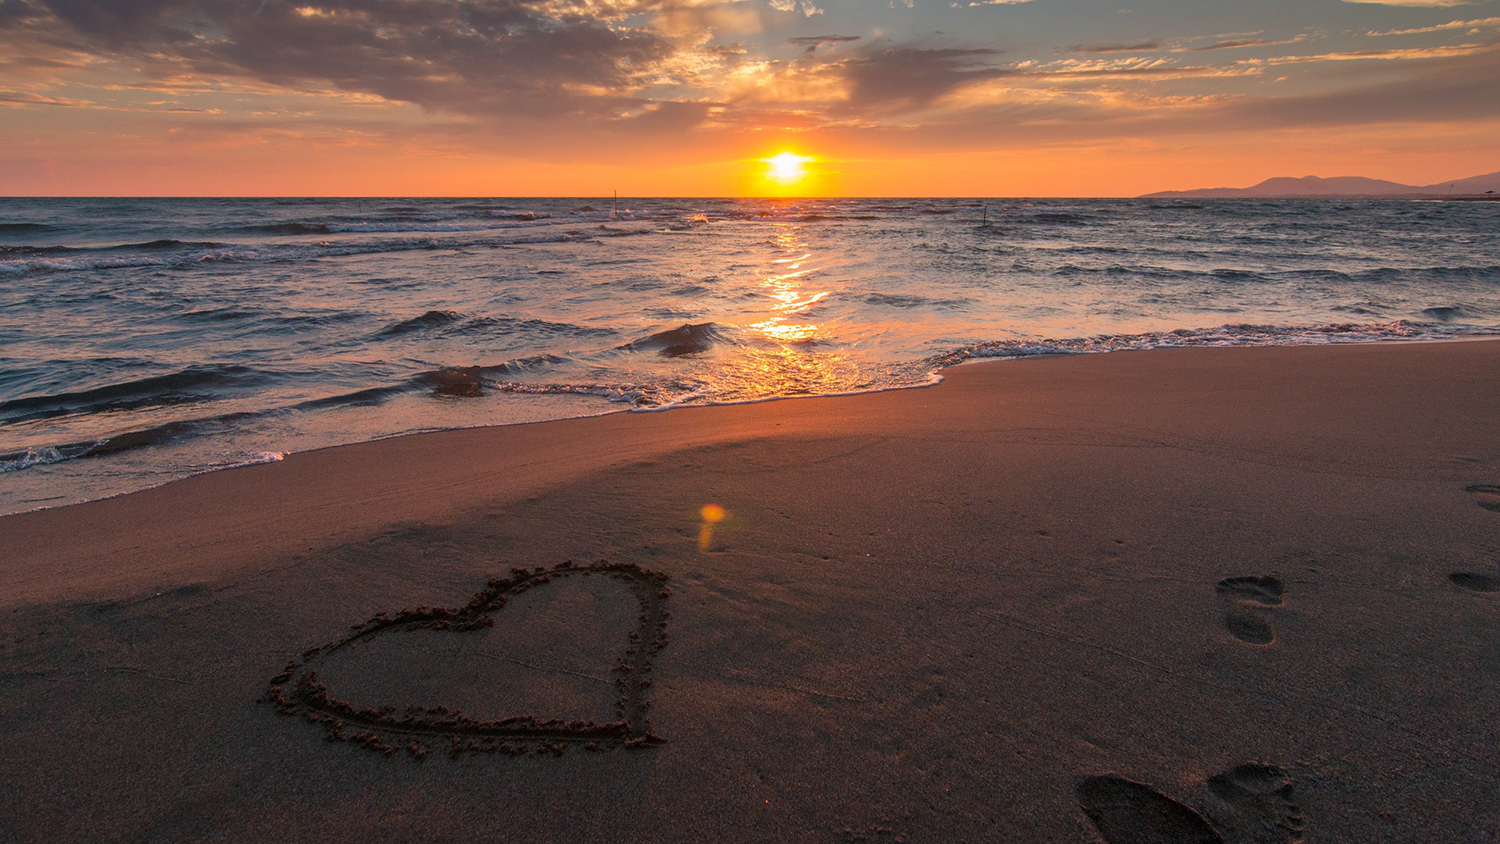 Beach sunset with heart drawn in the sand